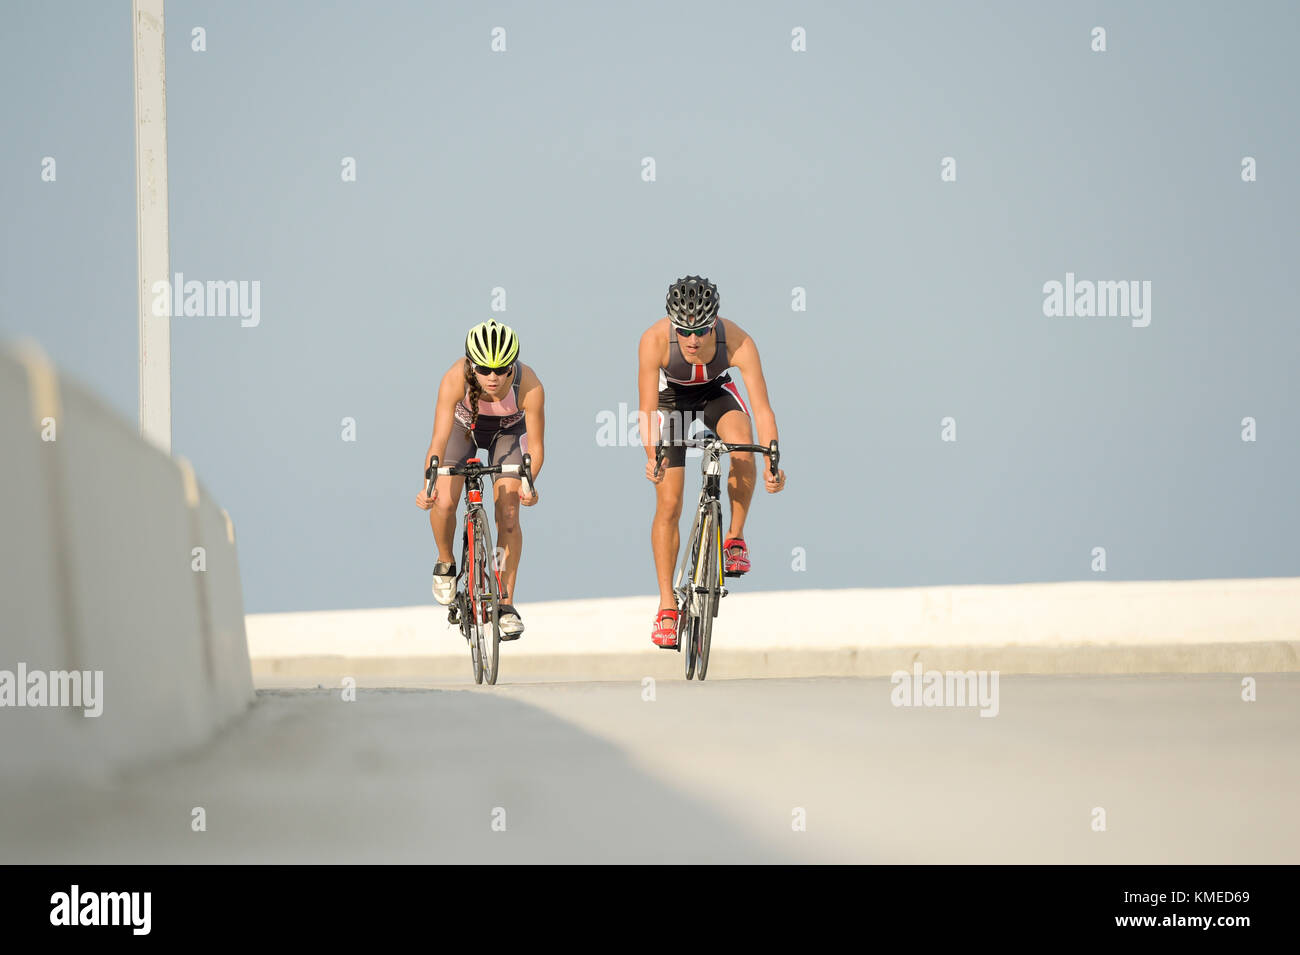 Two cyclists riding bicycles against clear sky during triathlon race,Veracruz,Mexico - Stock Image